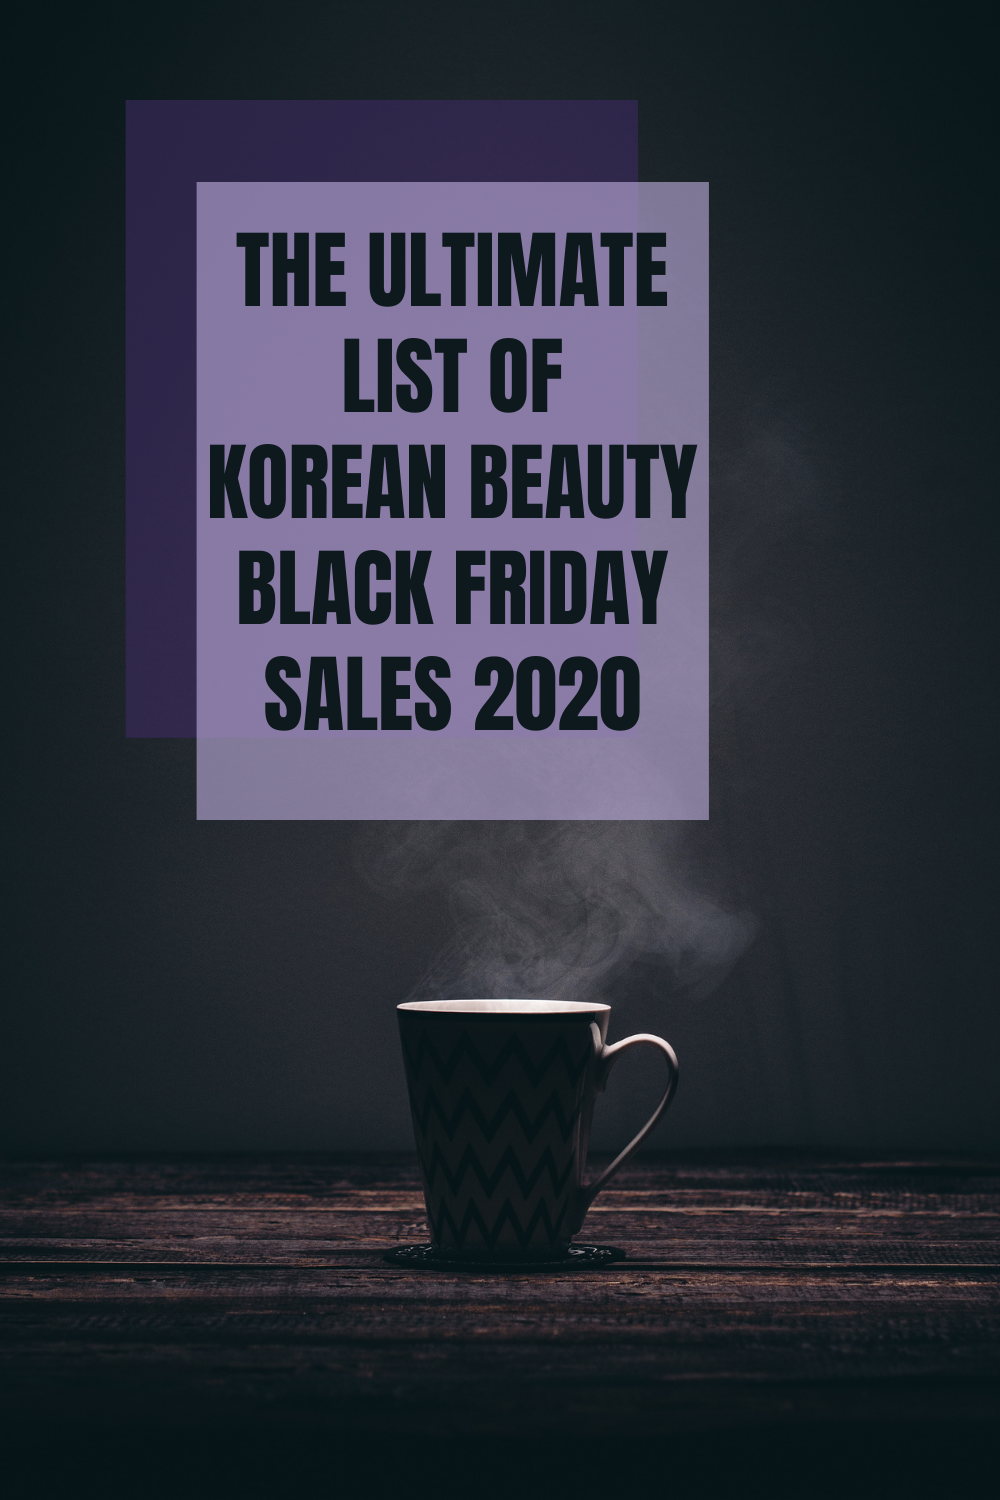 Korean Beauty Black Friday Sales 2020 List